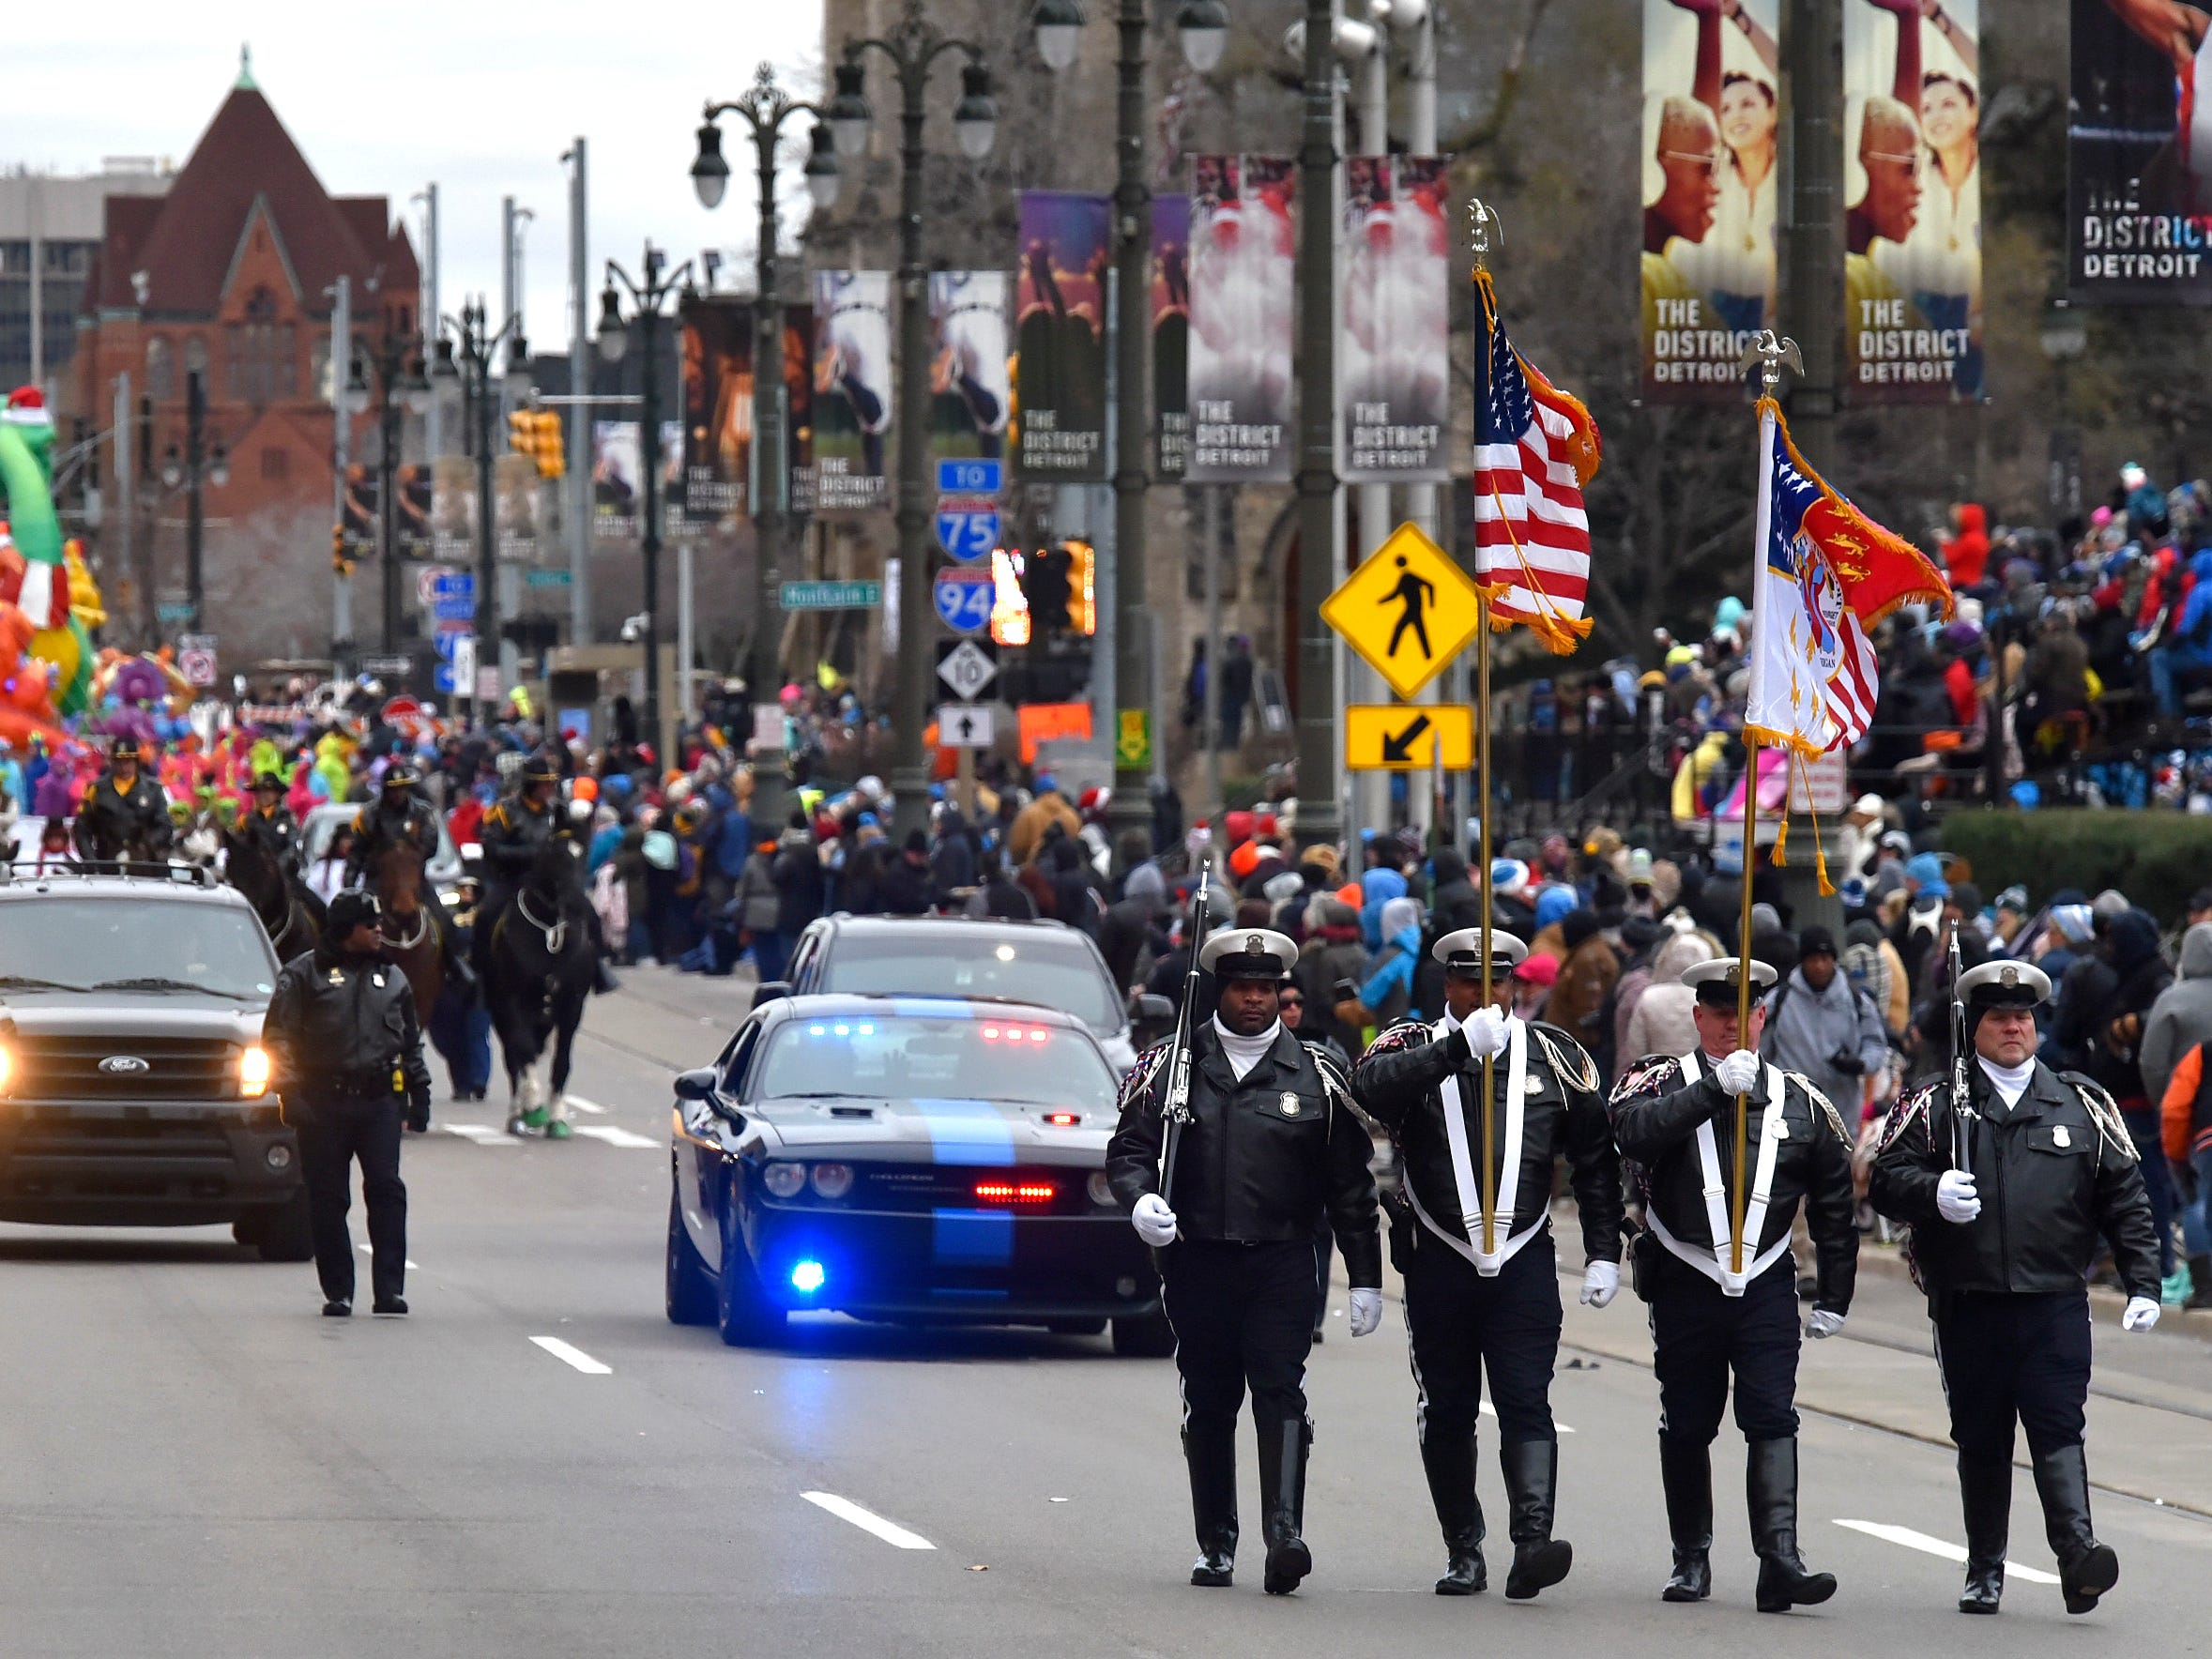 Officers from the Detroit Police Department Color Guard lead the 92nd America's Thanksgiving Day Parade in Detroit, Thursday, Nov. 22, 2018.